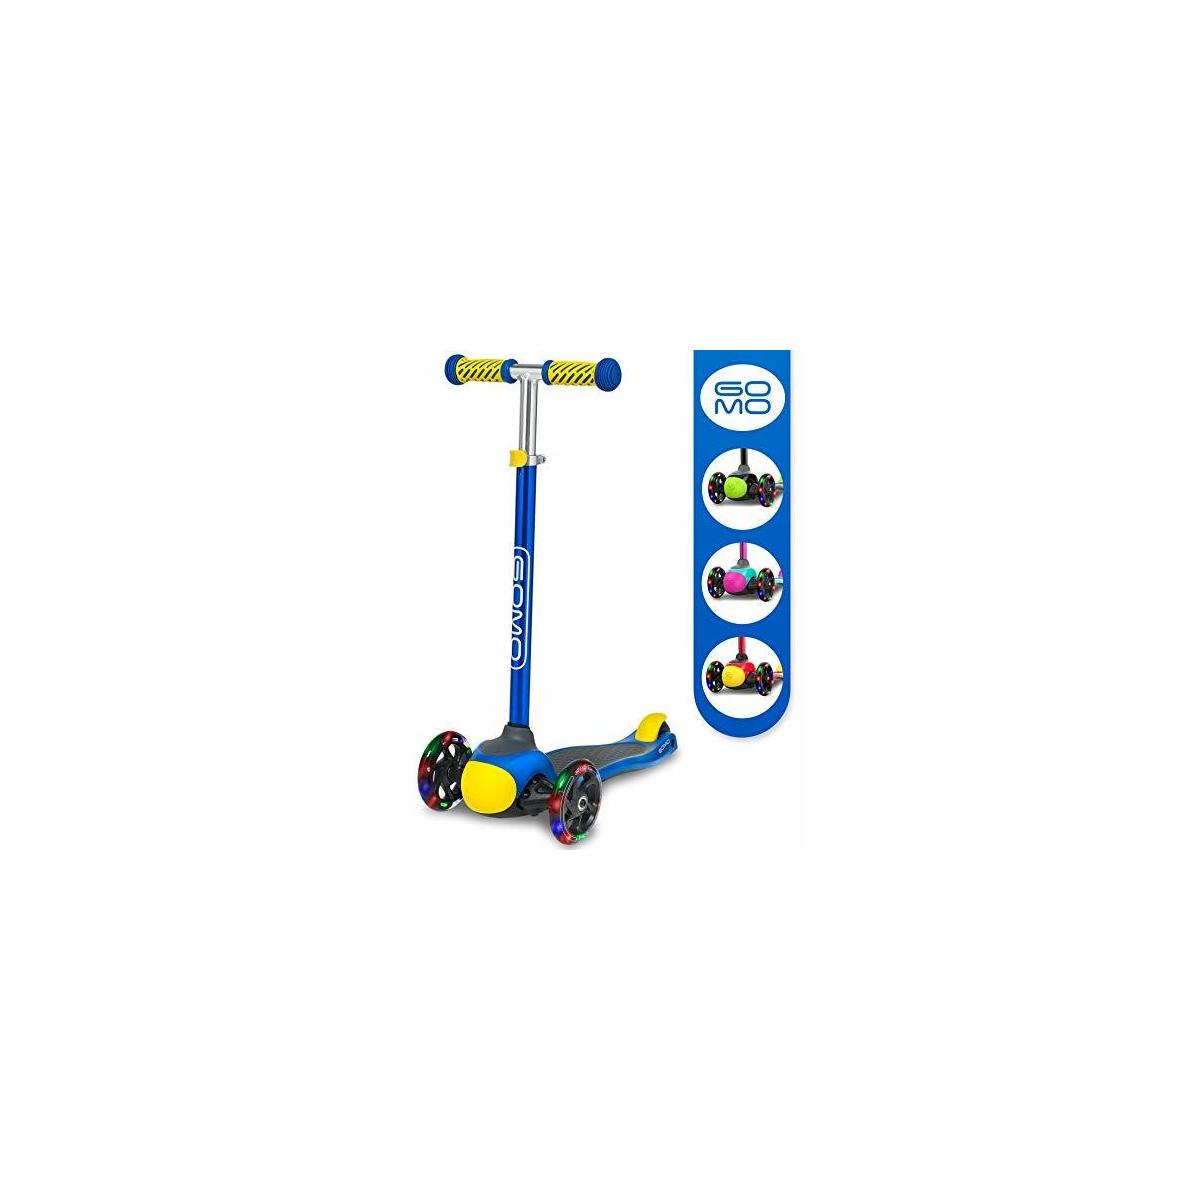 GOMO 3 Wheel Scooter (Blue ONLY!!!)